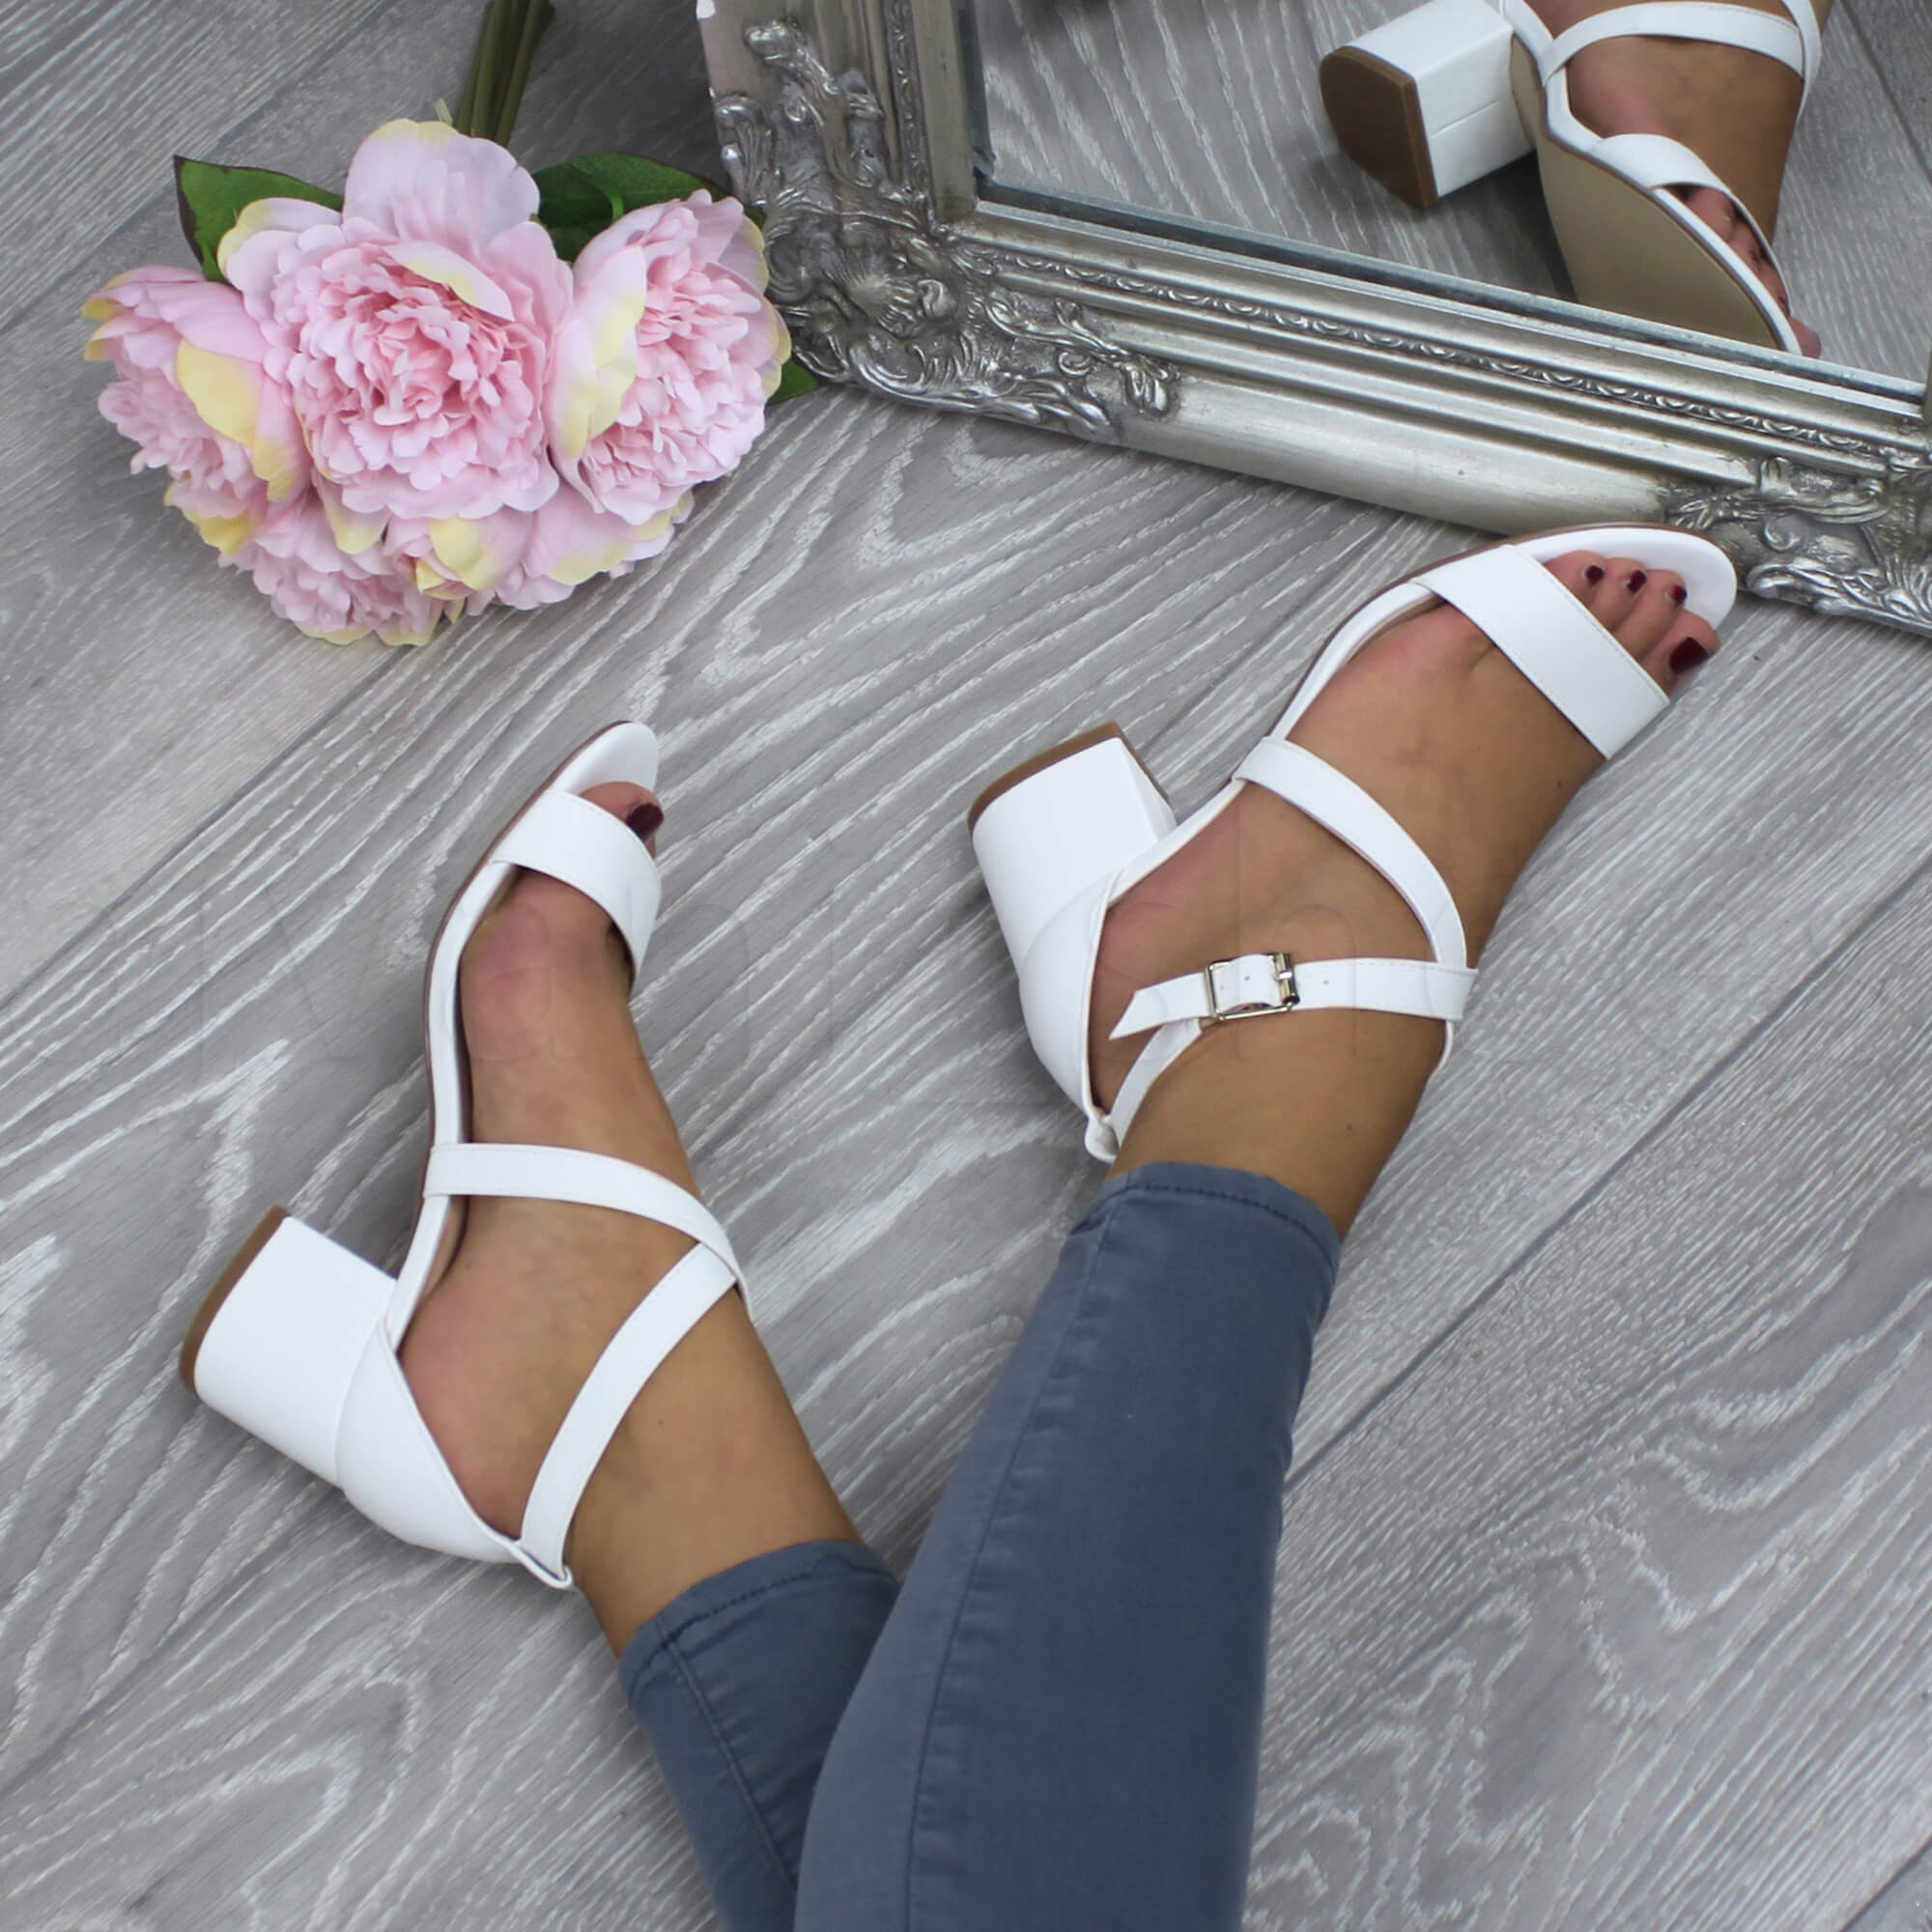 WOMENS-LADIES-MID-LOW-BLOCK-HEEL-CROSS-STRAPS-PARTY-STRAPPY-SANDALS-SHOES-SIZE thumbnail 101